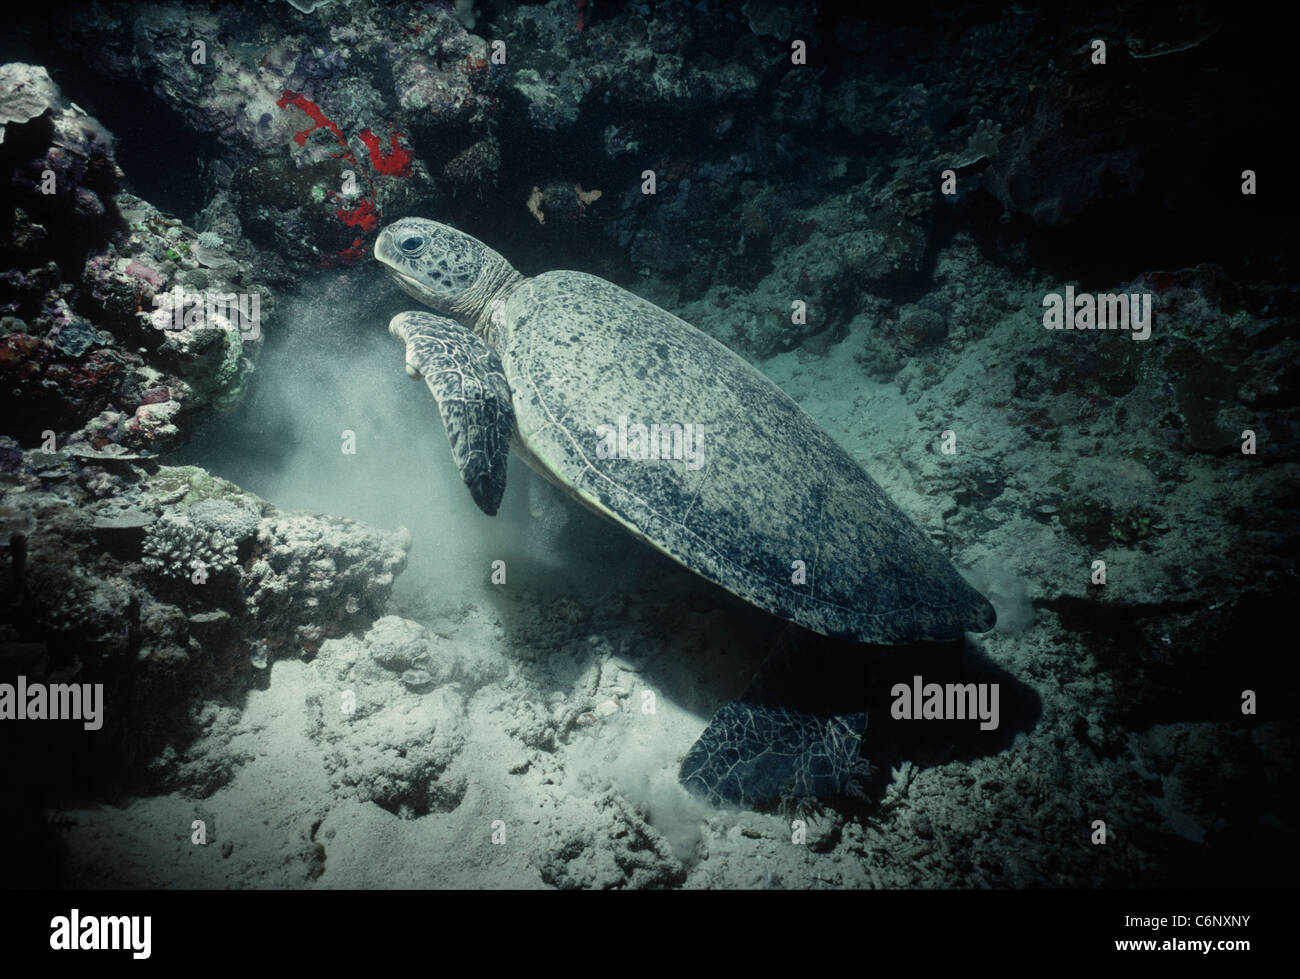 Green Turtle (Chelonia mydas) coming out of an underwater cave. Sipadan Island, Borneo, South China Sea - Stock Image